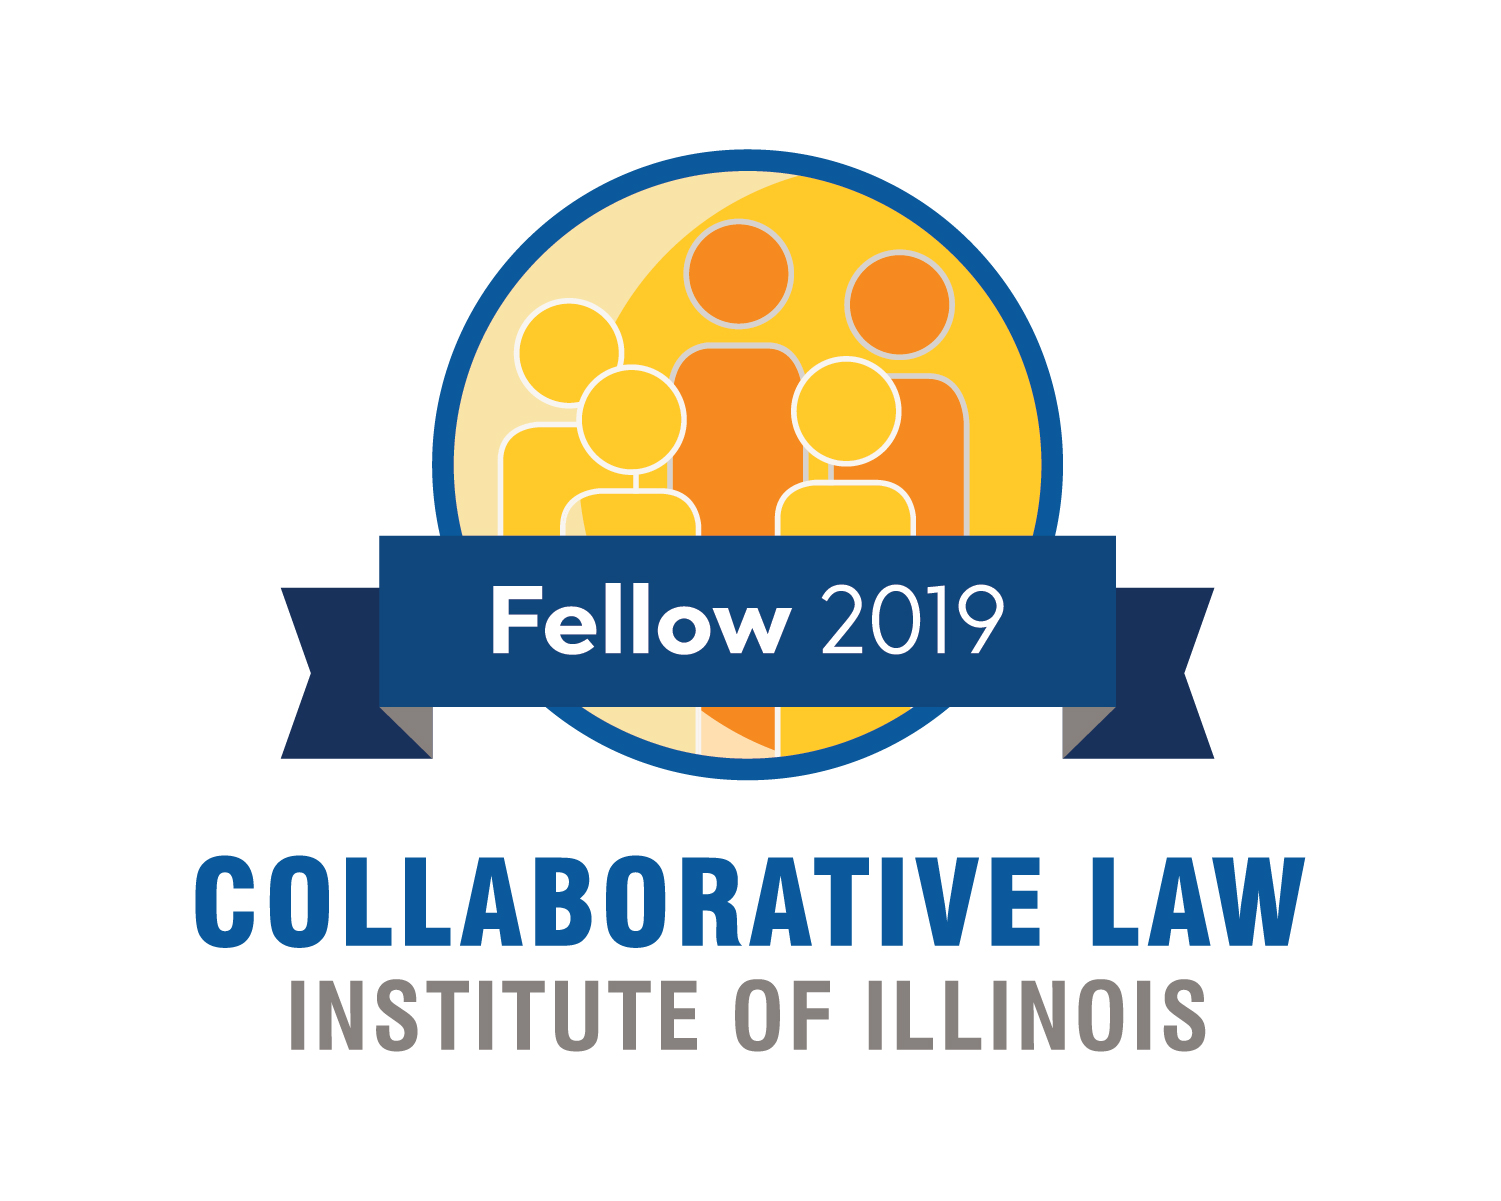 2019 Collaborative Law Institute of Illinois Fellow Seal